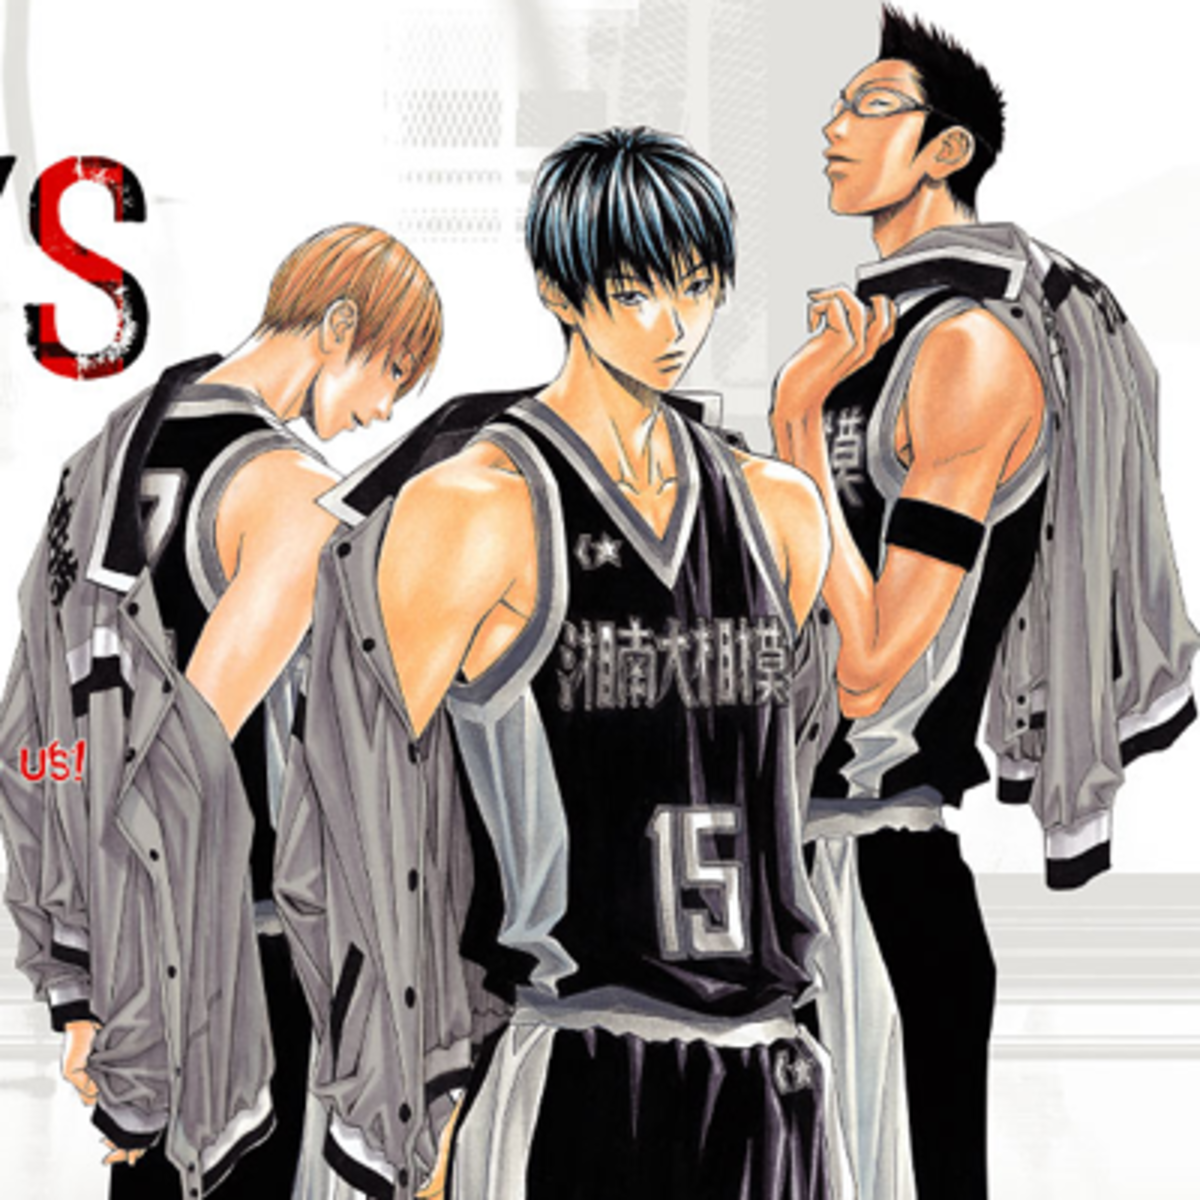 Mizuho High School basketball team's greatest rival.